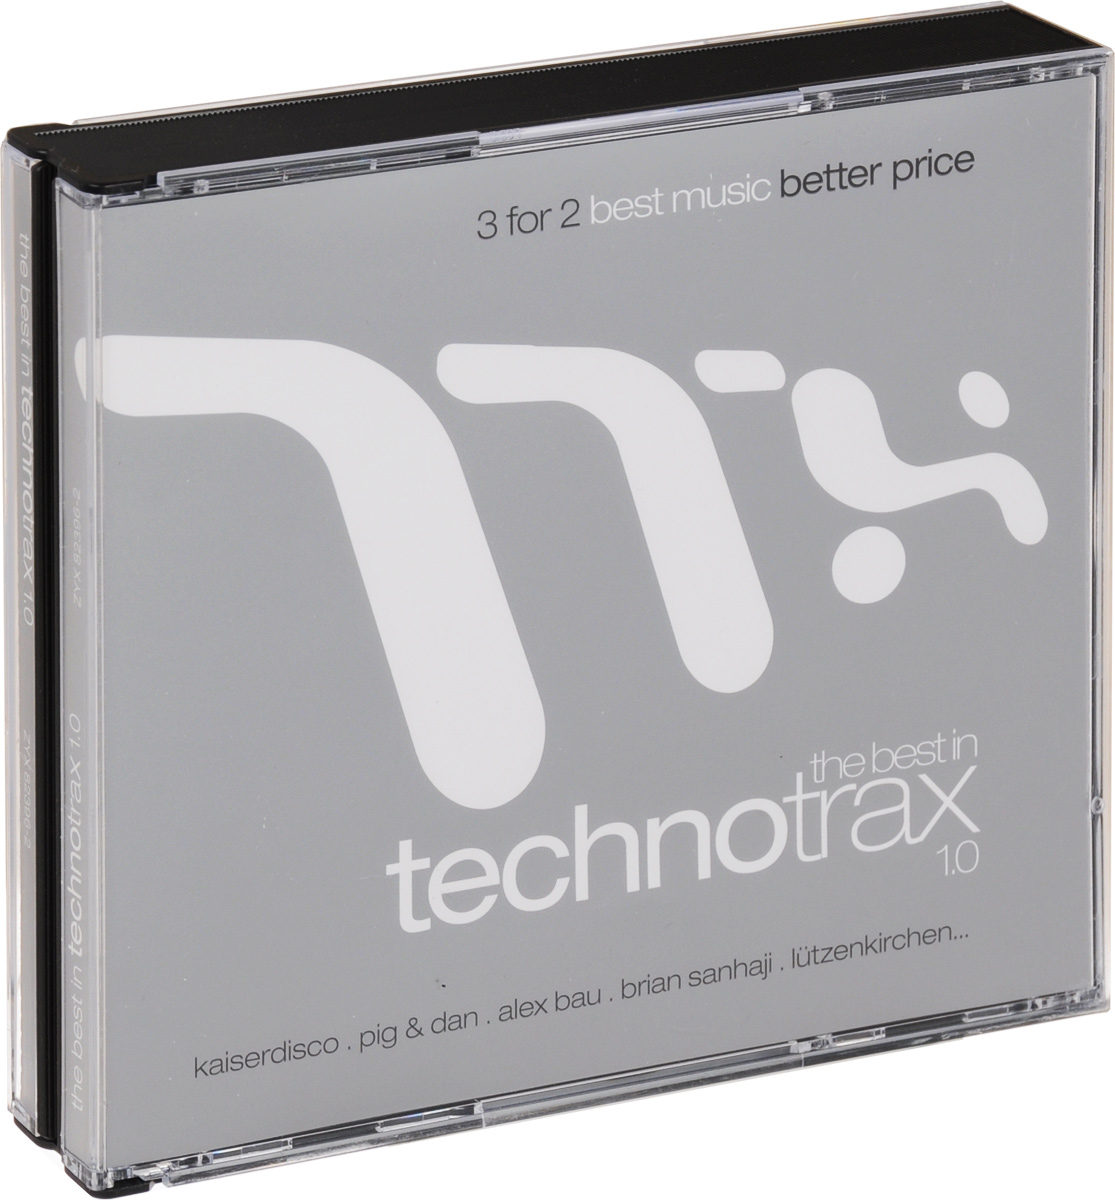 The Best In Technotrax 1.0 (3 CD)